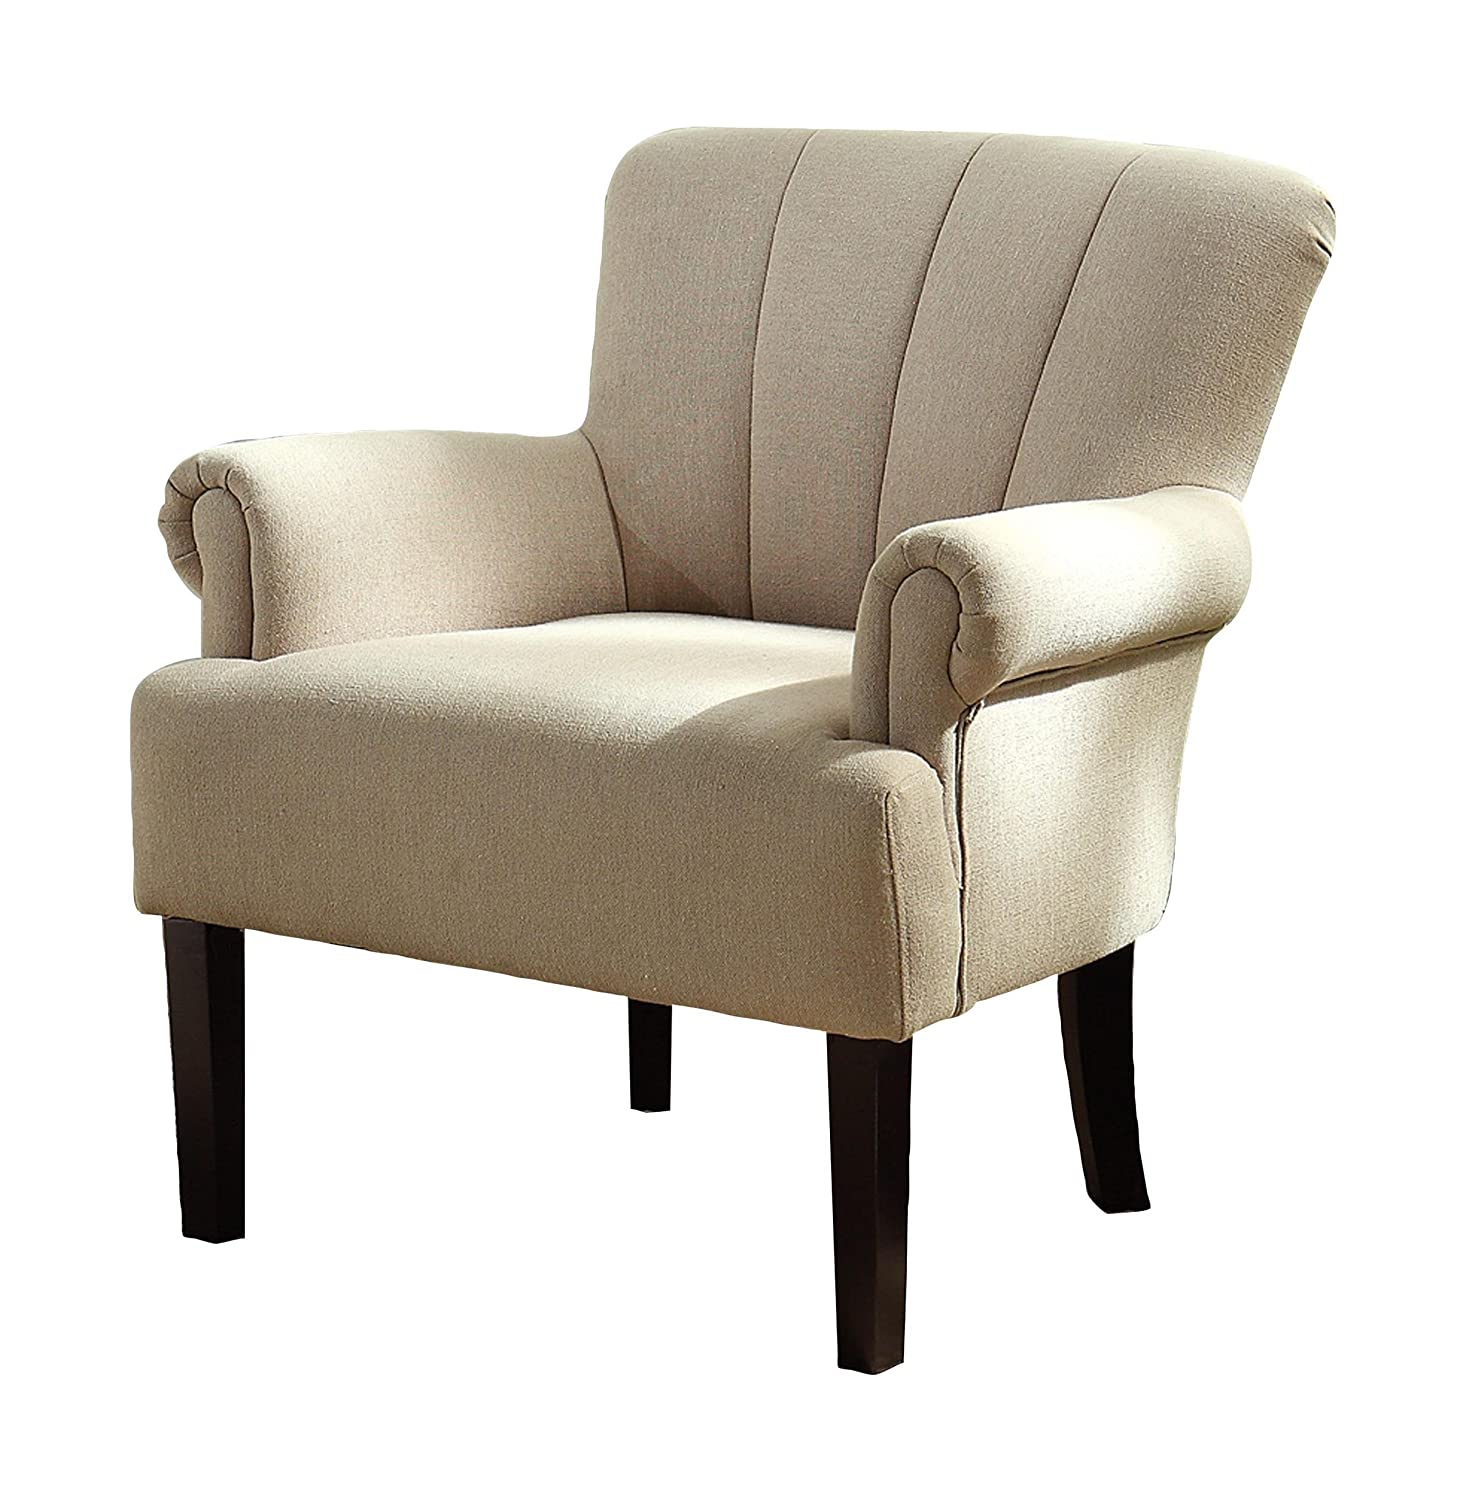 Nice Accent Chair With Arms Exterior